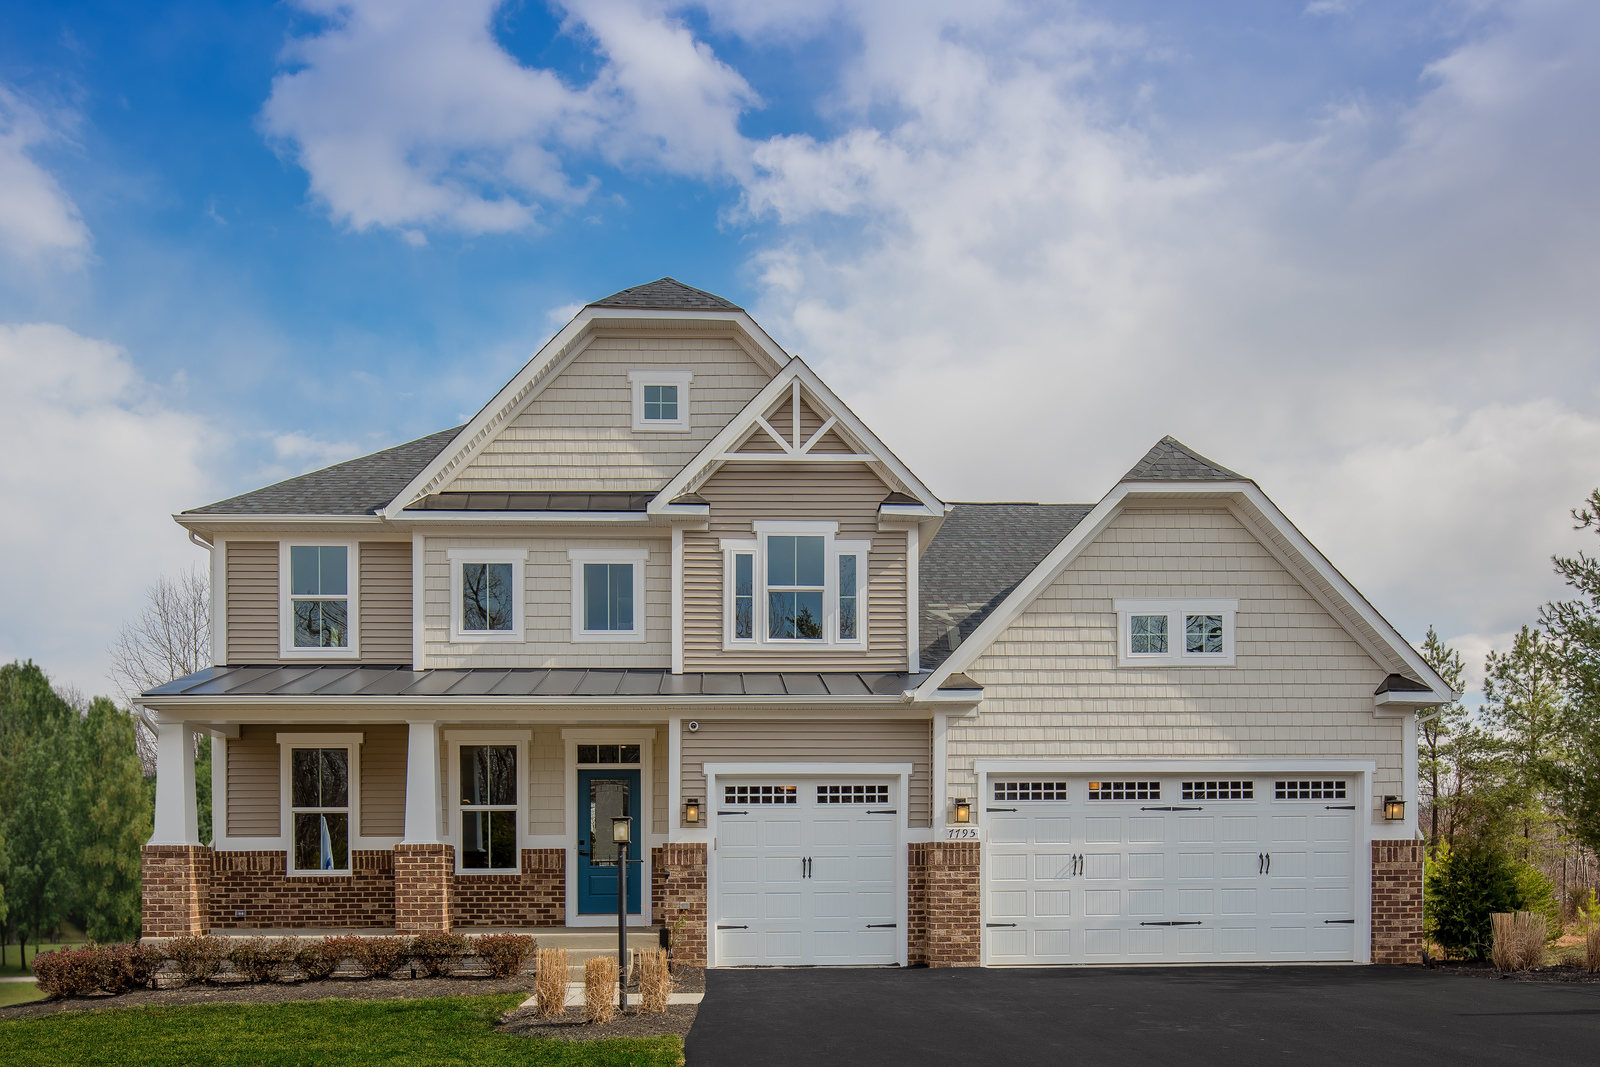 New Luxury Silver Summit in Robinson Township PA within the Montour